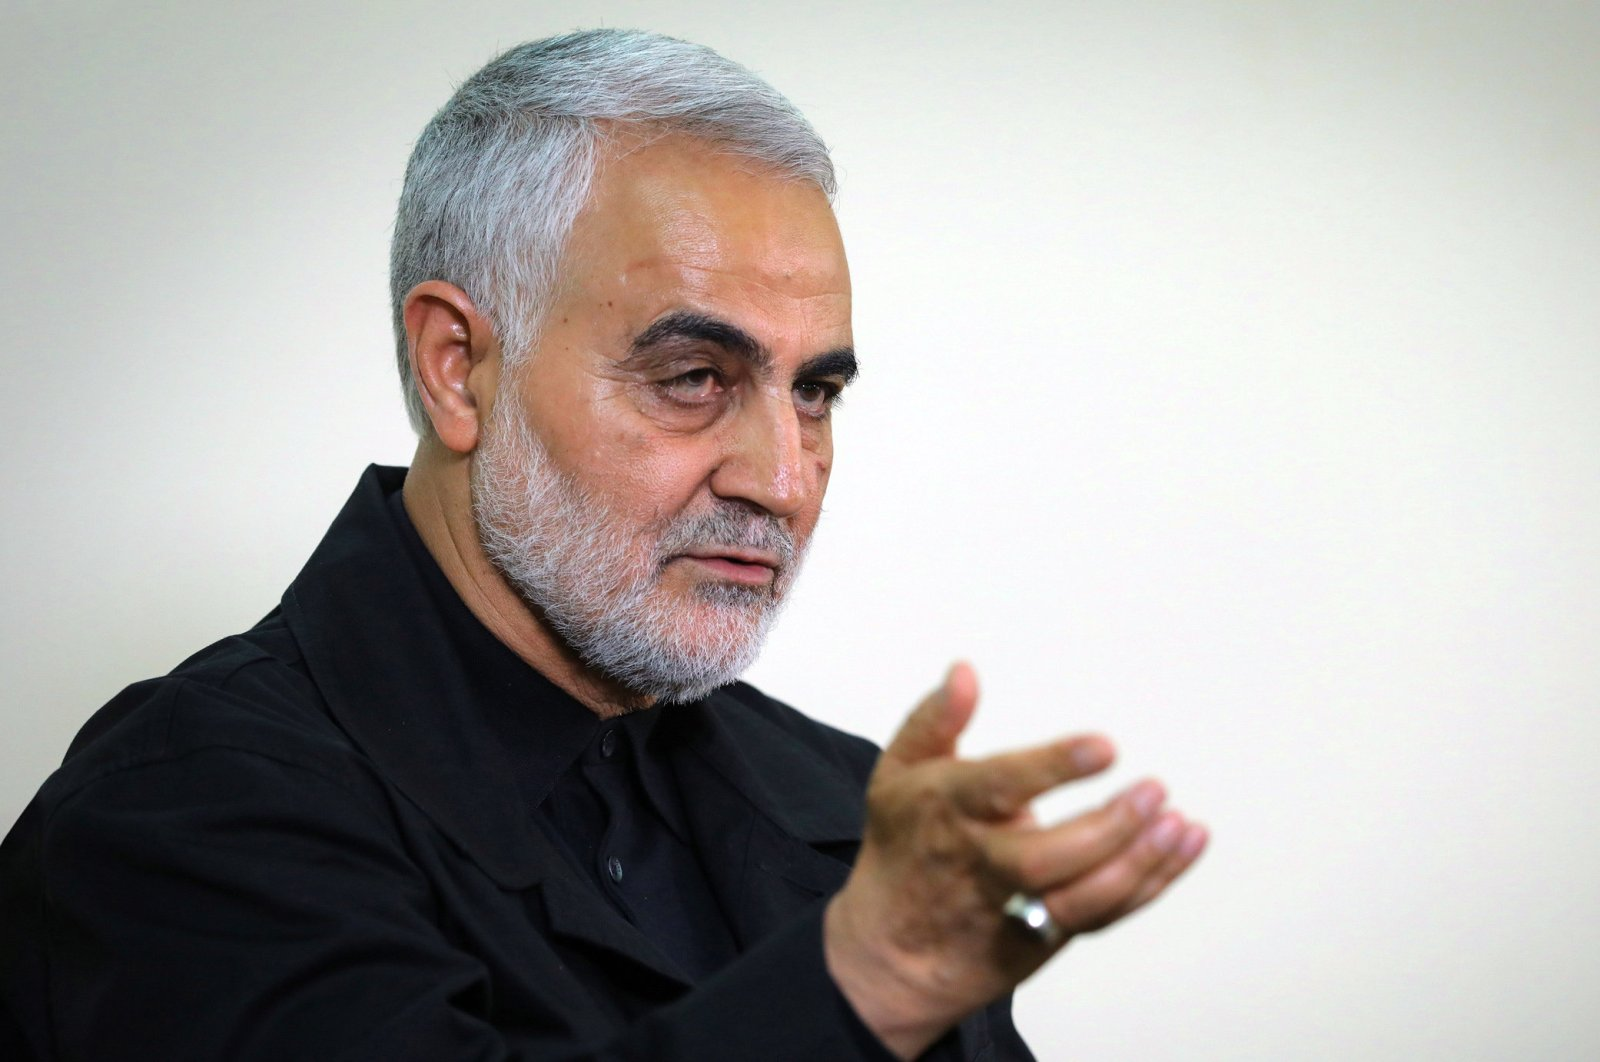 Qasem Soleimani, Iranian Revolutionary Guards Corps (IRGC) major general and commander of the Quds Force, speaks during an interview with members of the Iranian leader's bureau, Tehran, Dec. 1, 2019. (AFP Photo)